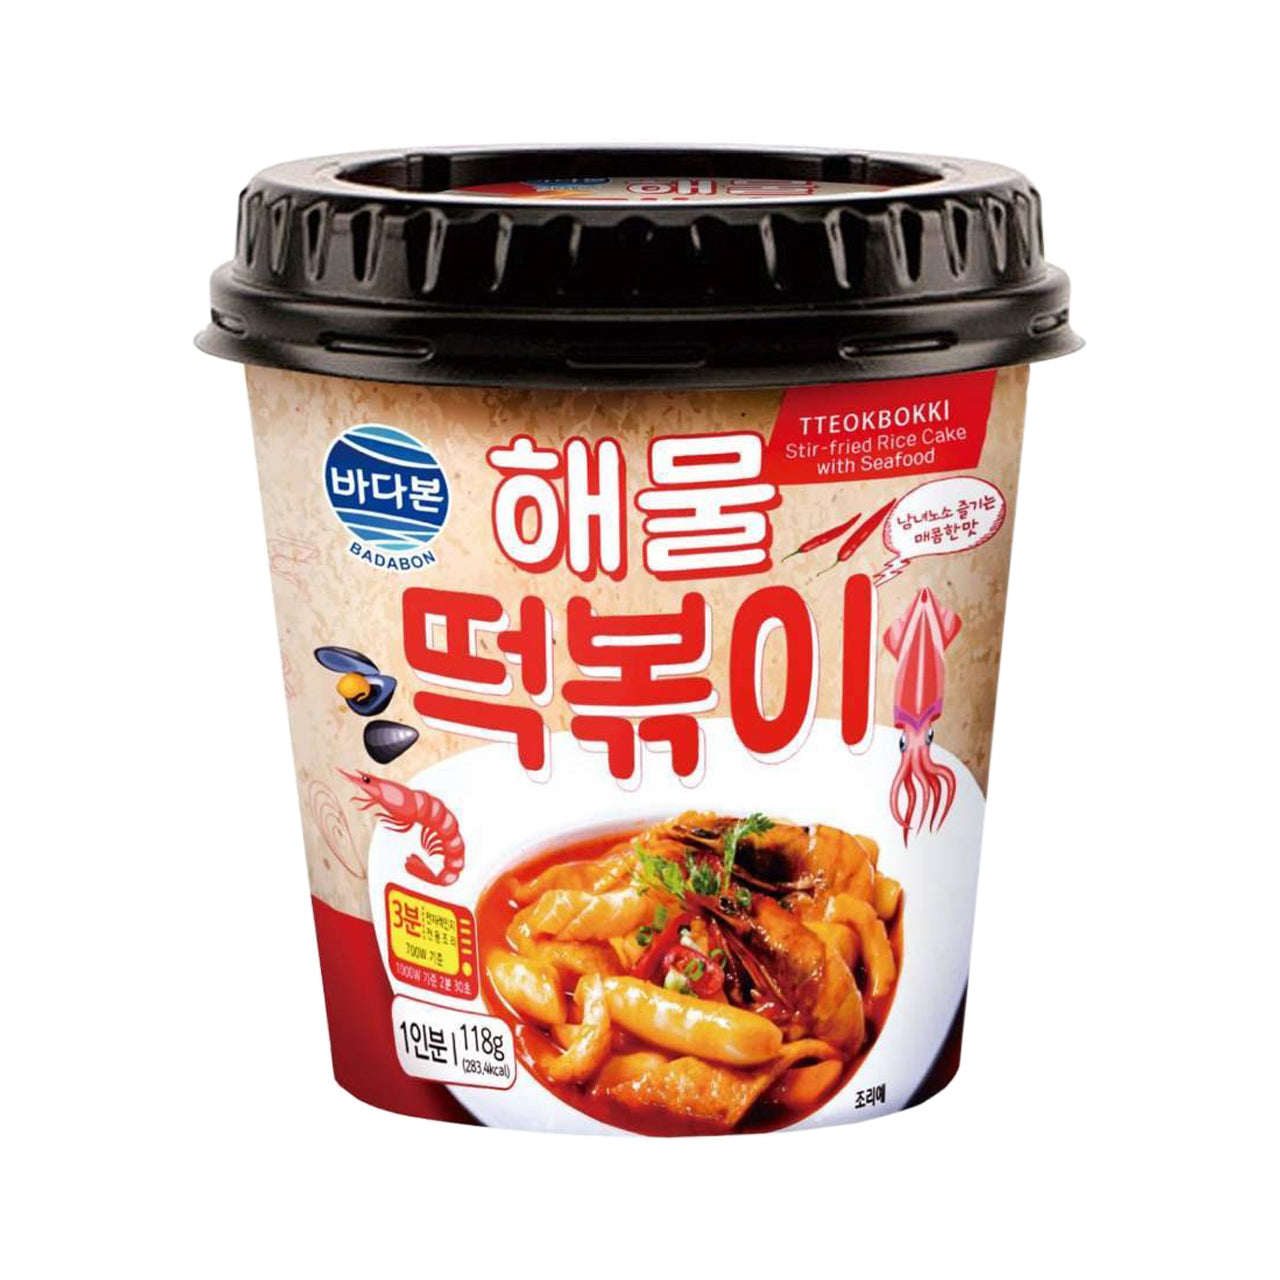 [Weekly Sale] 바다본 해물 떡볶이 (Badabon Seafood Stir-Fried Rice Cake with Ref Crab) - 118g